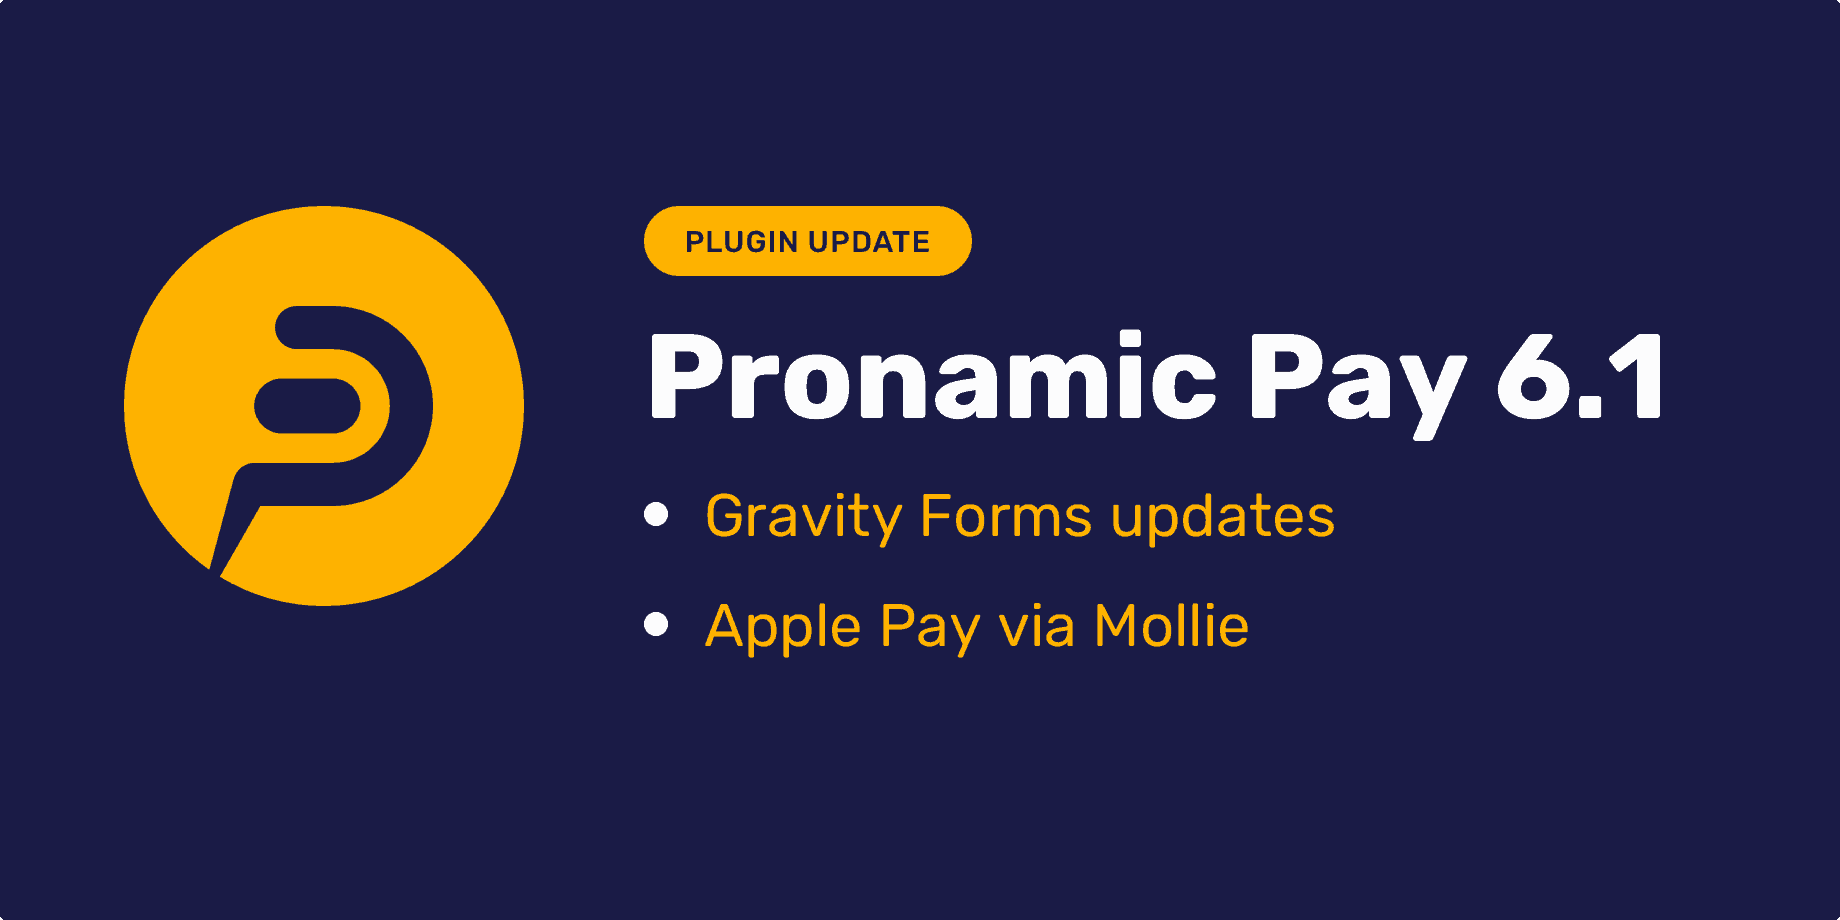 Pronamic-Pay-6.1-NL